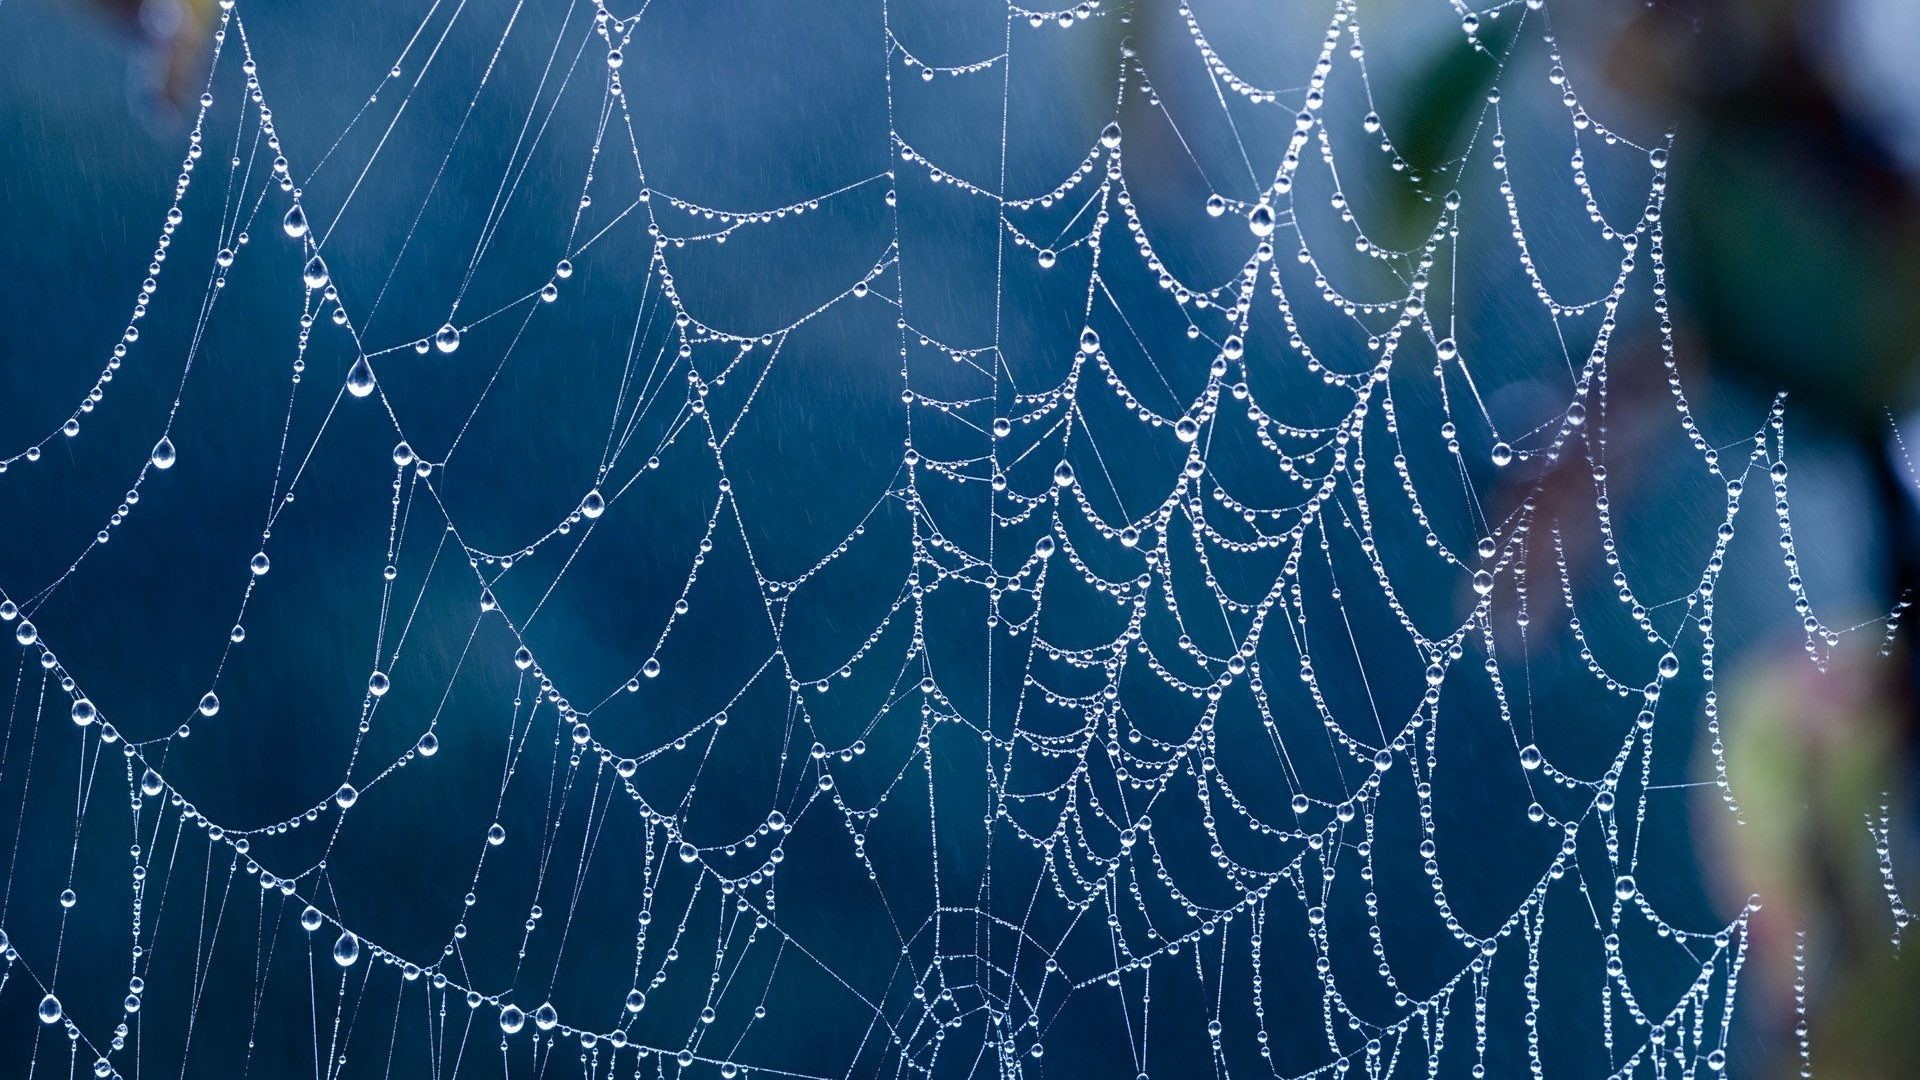 Webs Tag – Creepy Spider Webs Hd Full Size Nature Wallpaper for HD 16:9